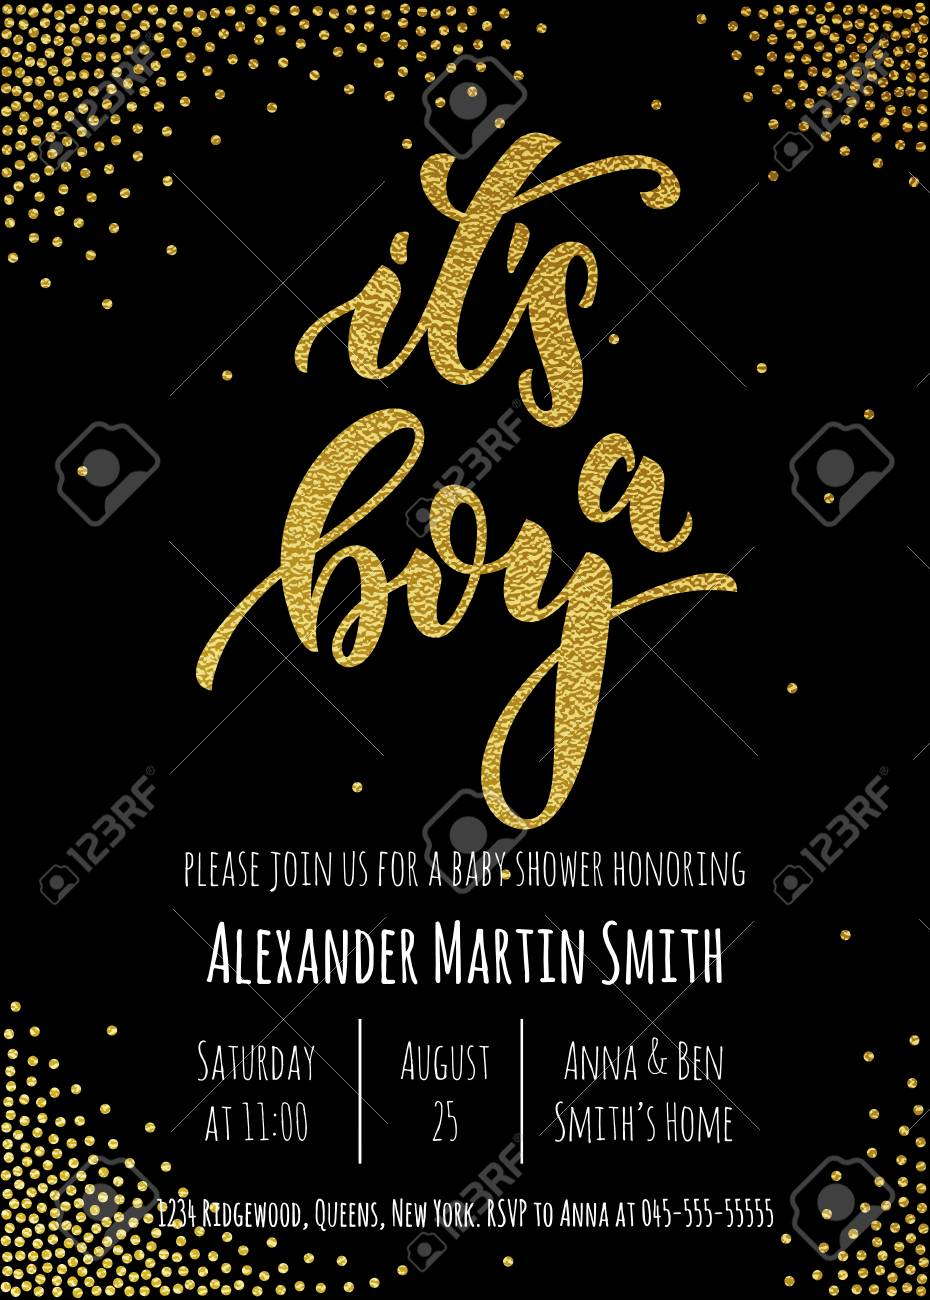 it's a boy invitation party card template. hand drawn golden